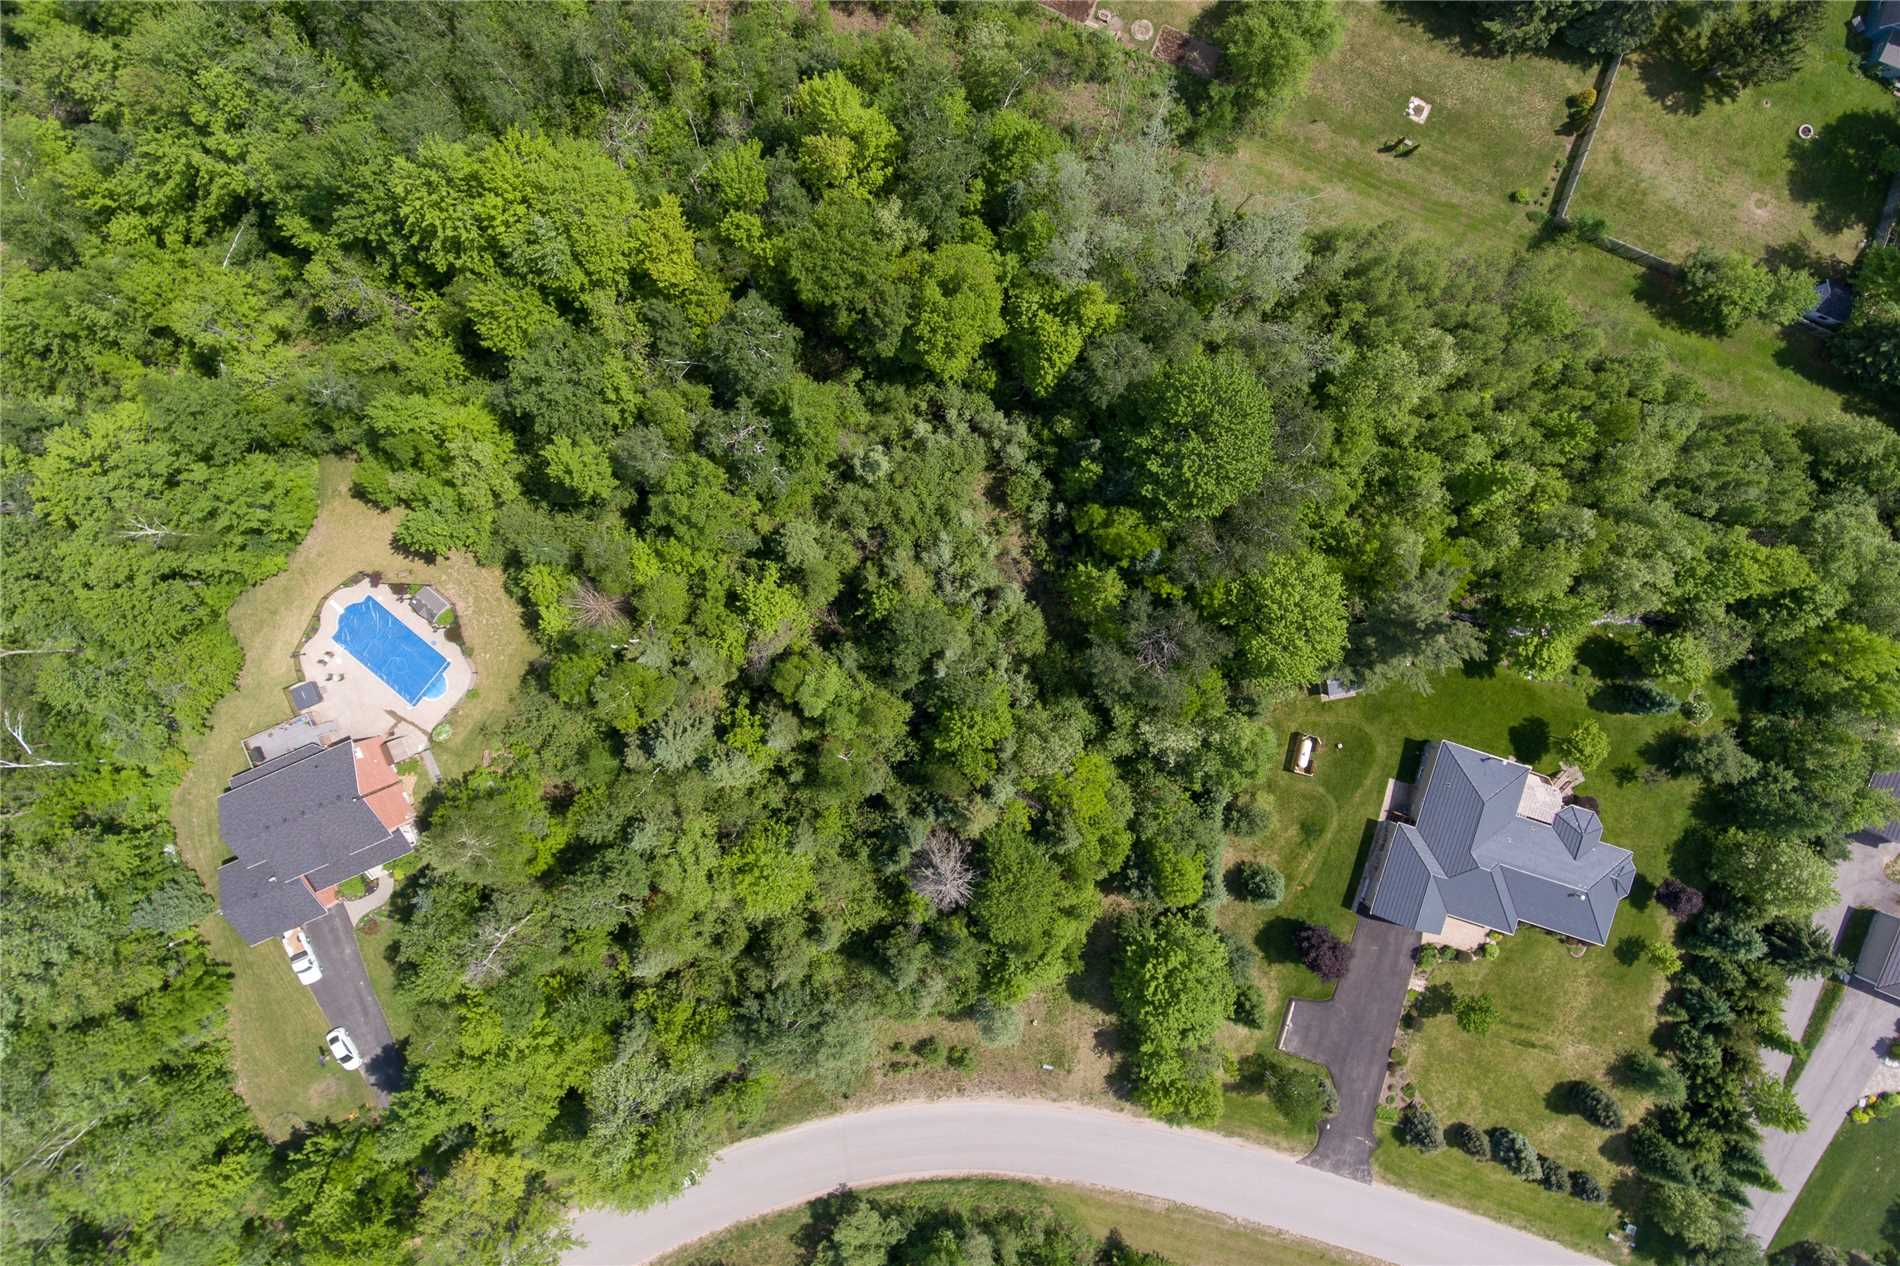 **Amazing Opportunity** Fully Treed 2.5 Acre Pie Shaped Lot In An Established Golf Course Community (Silver Brook Estates!) Build Your Dream Home On One Of The Largest Treed Lots Next To Million Dollar Homes & Estates. Rare Building Lot Opportunity To Build An Estate Home In An Established Community & Not Have Years Of Construction To Contend With, Minutes To Alliston & Camp Borden & Less Than An Hr North Of Toronto--Great Place To Call Home, Don't Miss Out!